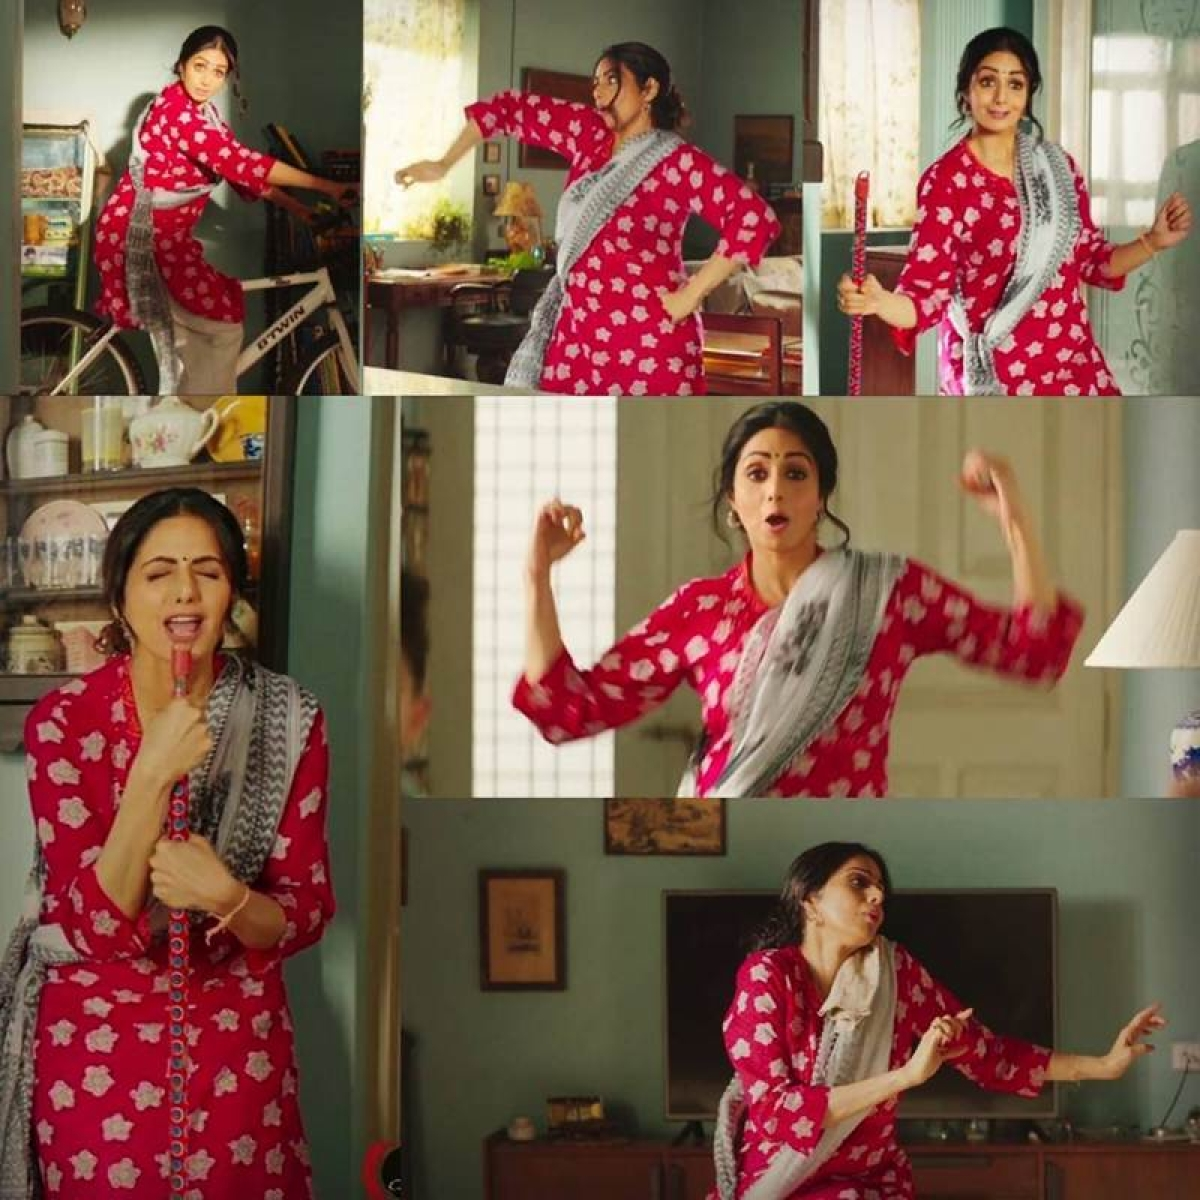 Styling was tweaked to suit late Sridevi's persona for an ad